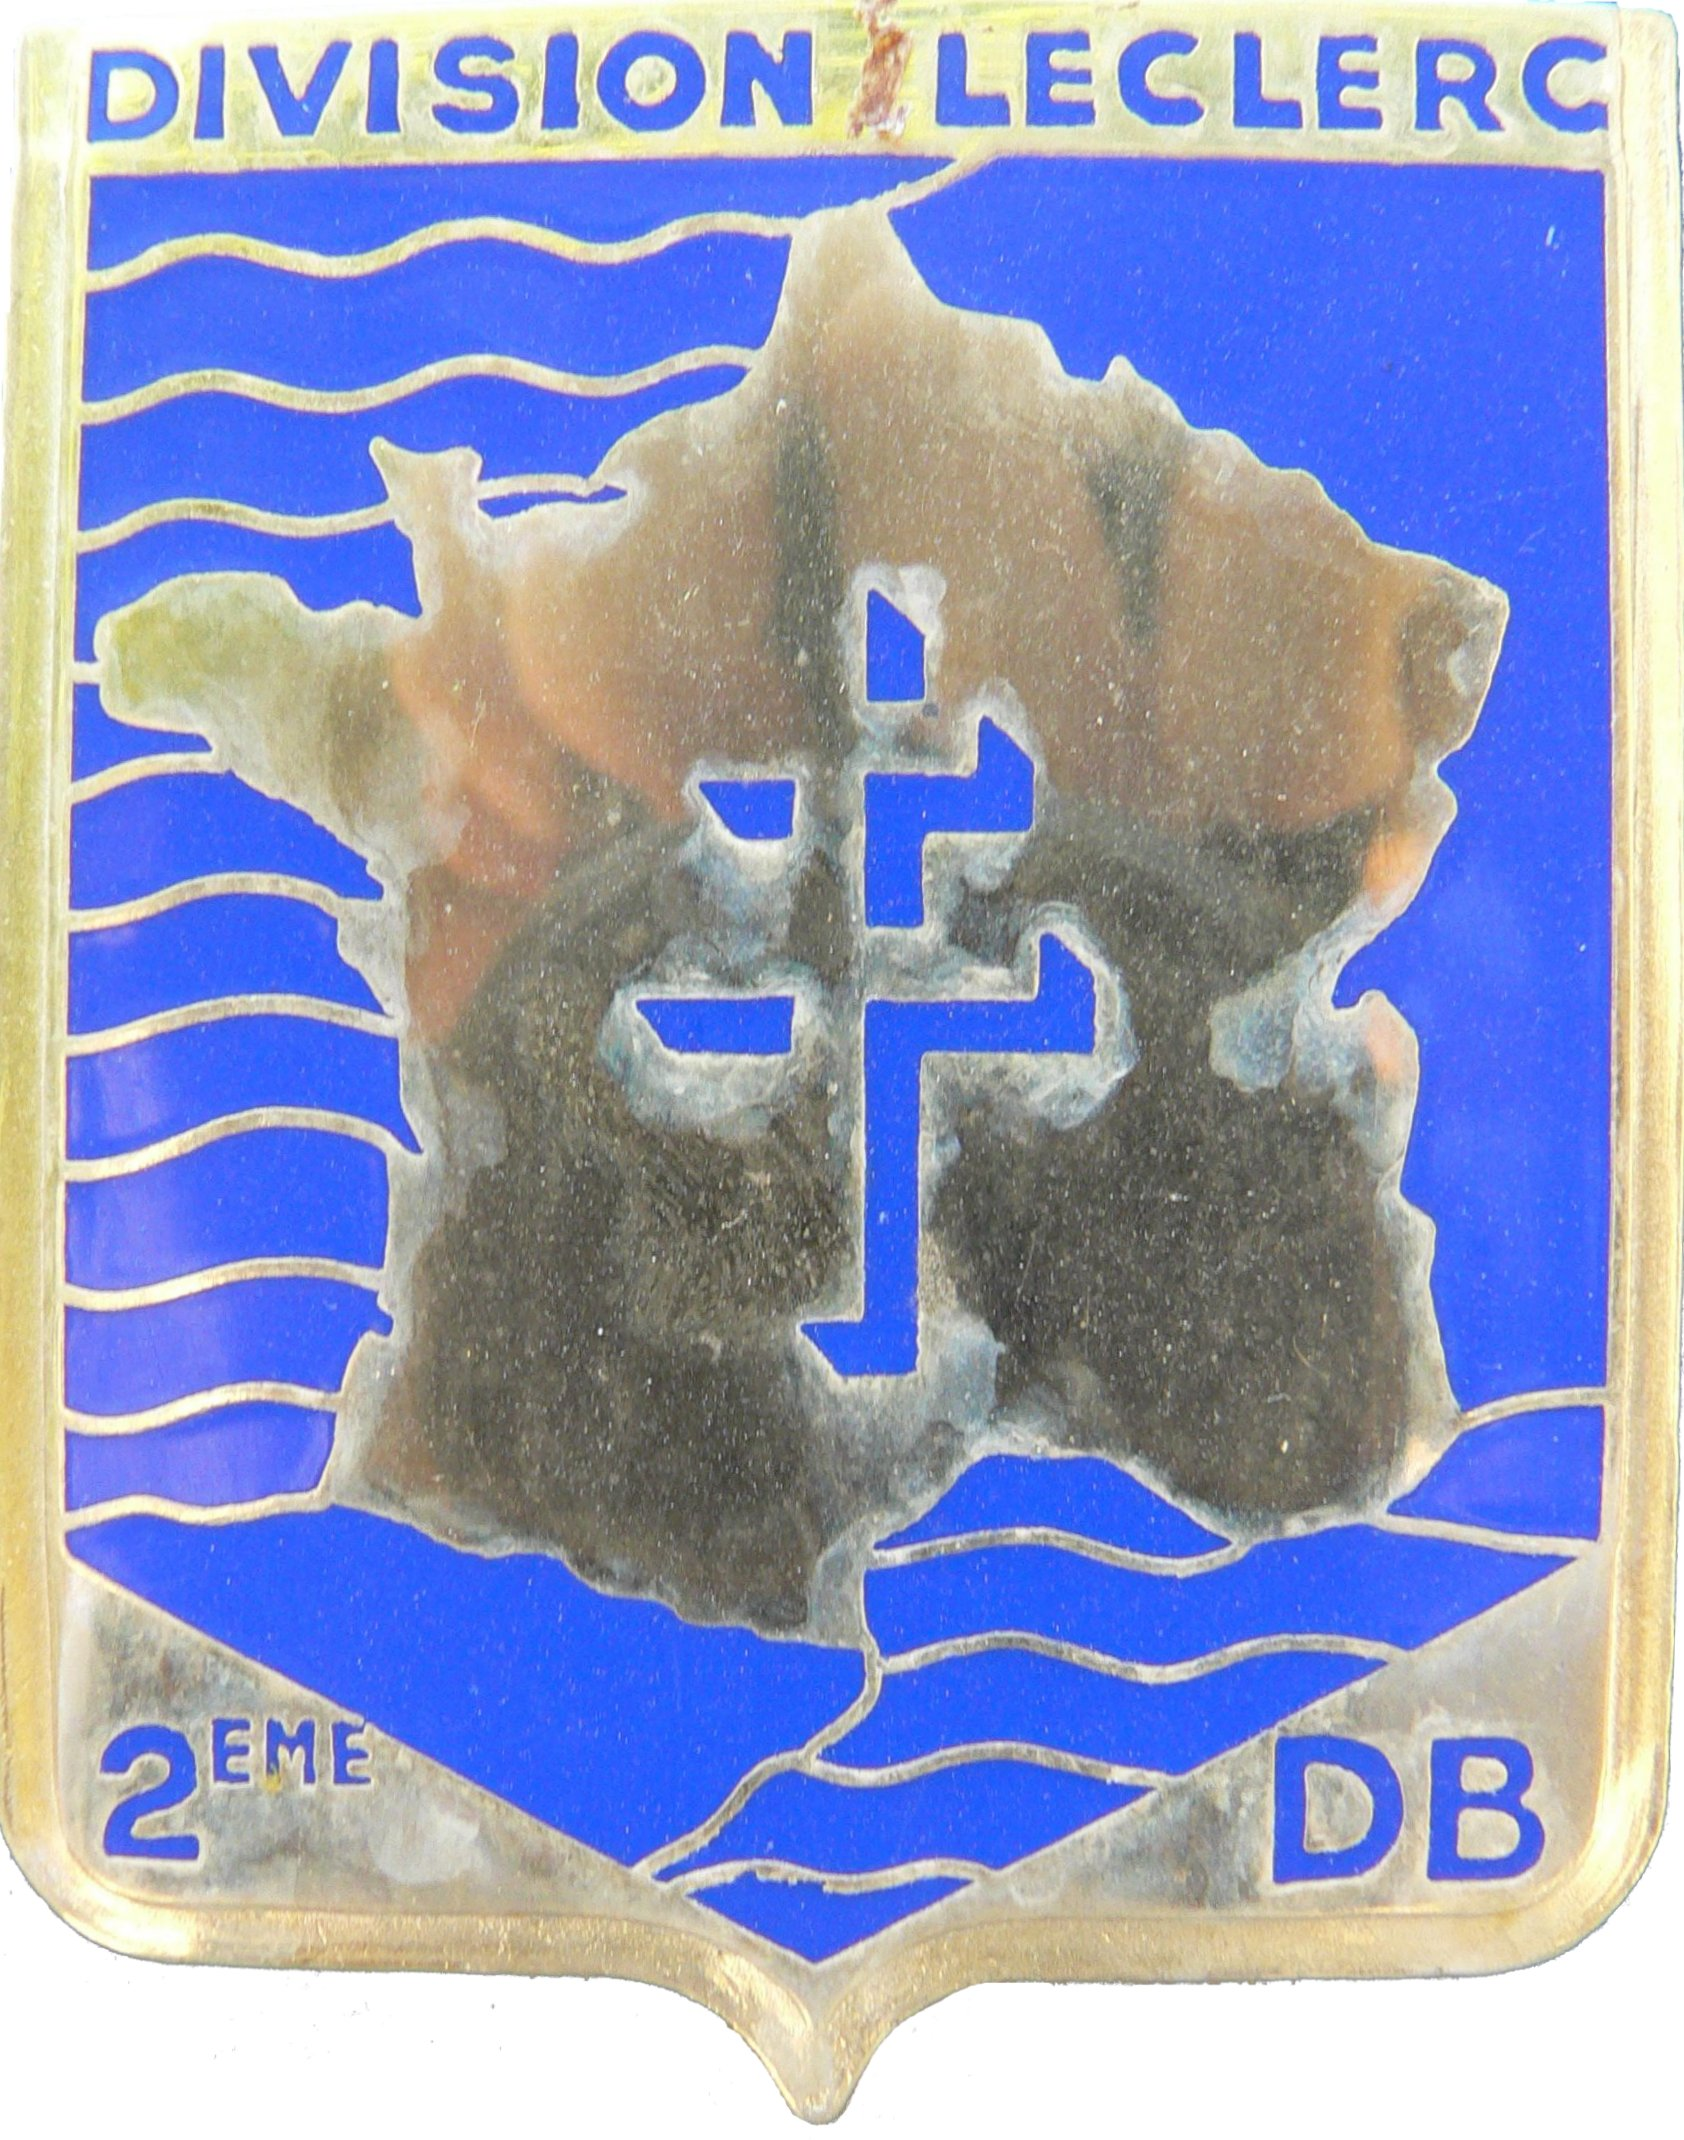 Arms of General Leclerc's 2nd Armored Division involved in the battle for Paris.